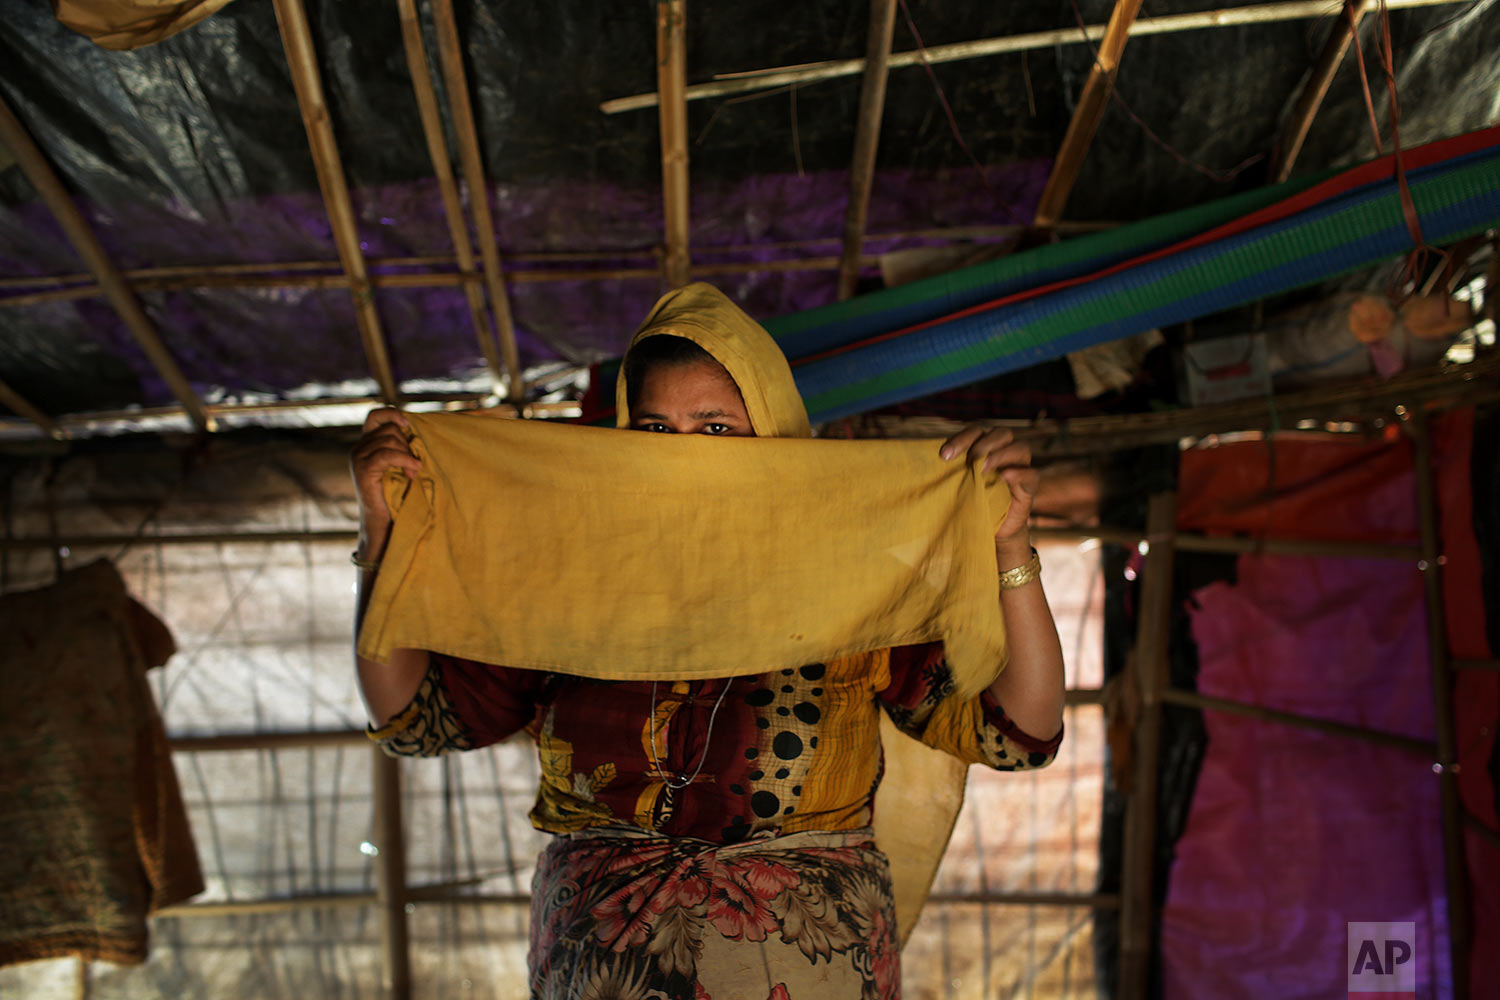 In this Tuesday, Nov. 21, 2017, photo, M, 25, mother of four, who says she was raped by members of Myanmar's armed forces in late August, is photographed in her tent in Kutupalong refugee camp in Bangladesh.  (AP Photo/Wong Maye-E)